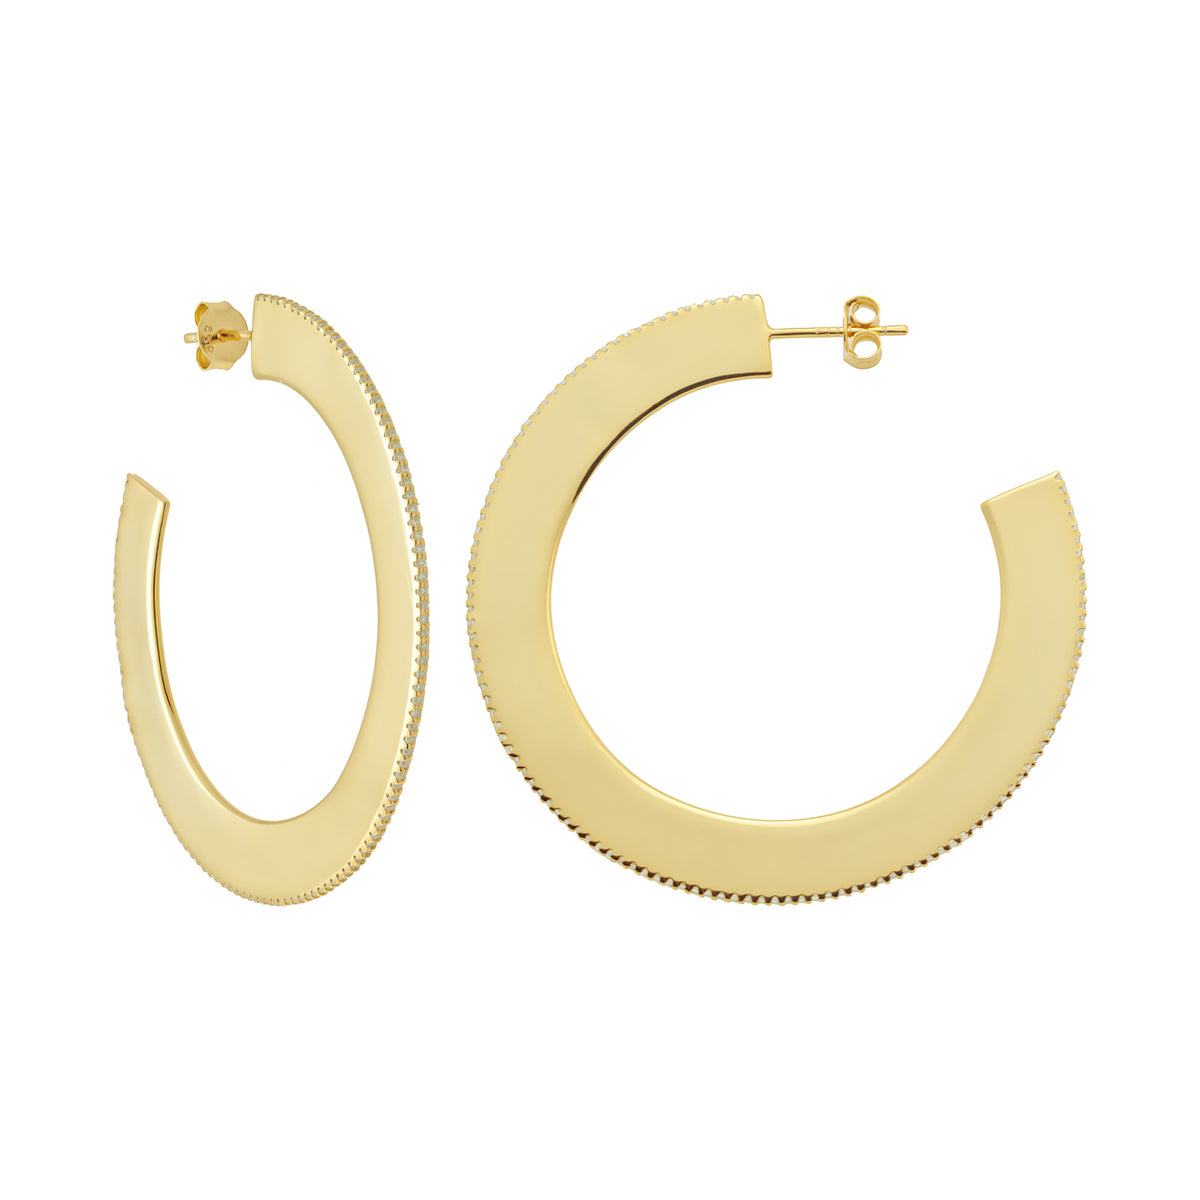 Ferentina | Princess Cake Earrings | 18K Gold Plated 925 Silver